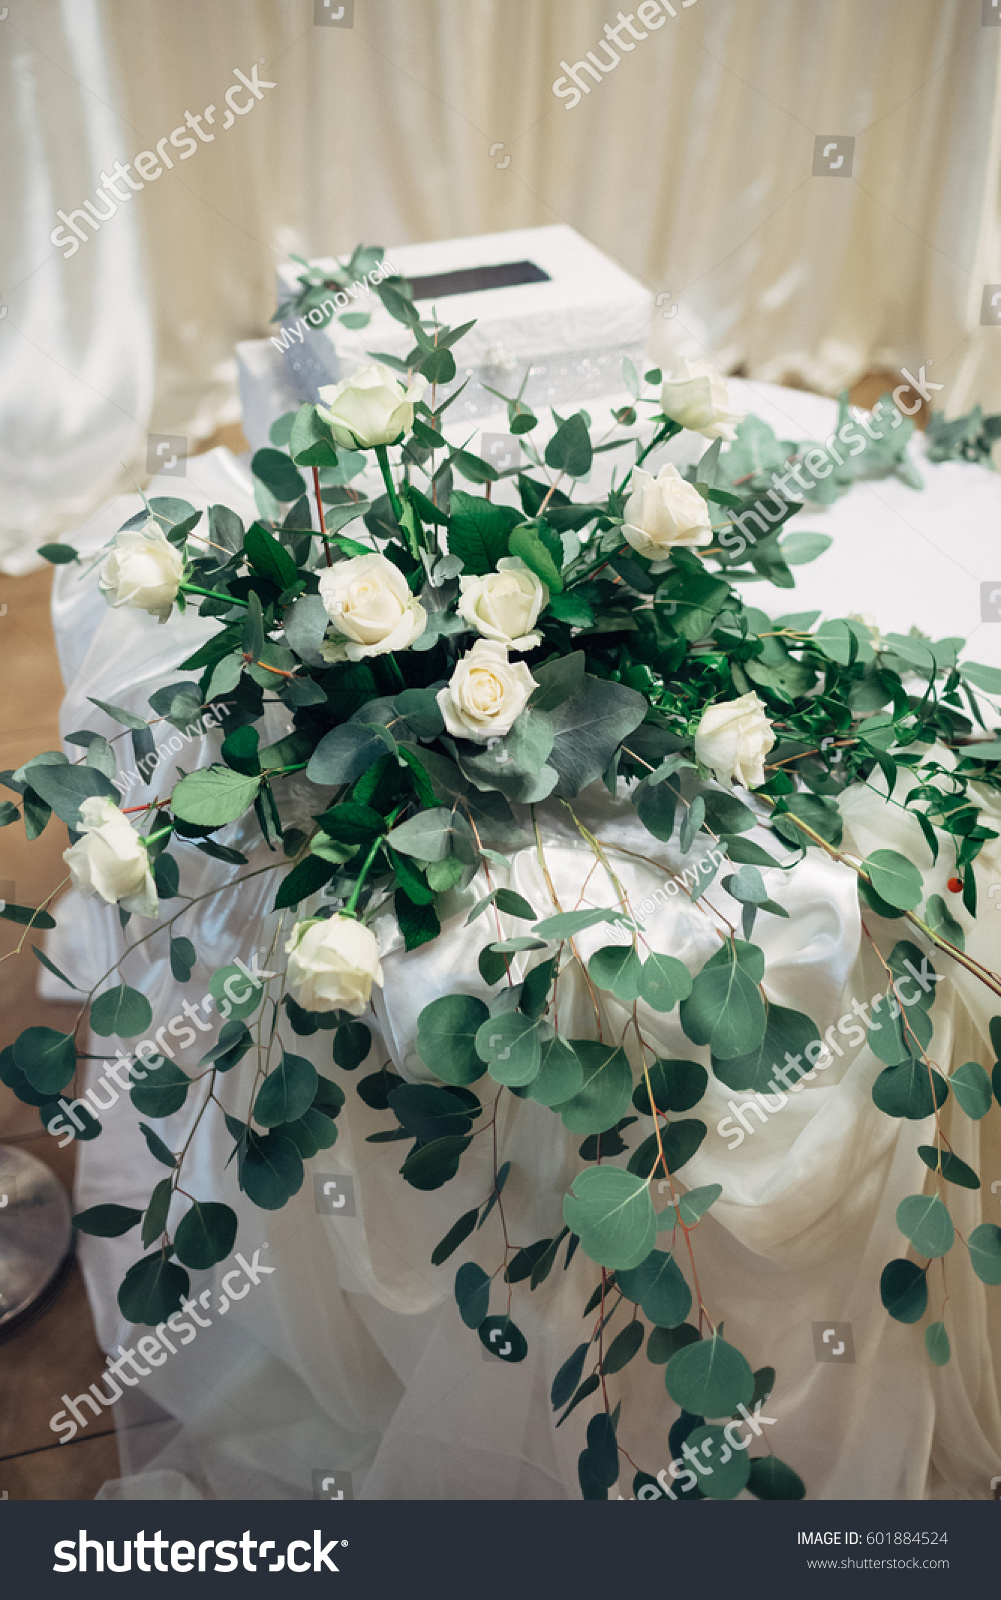 Bouquet Of White Roses And Long Green Branches Stands On Little